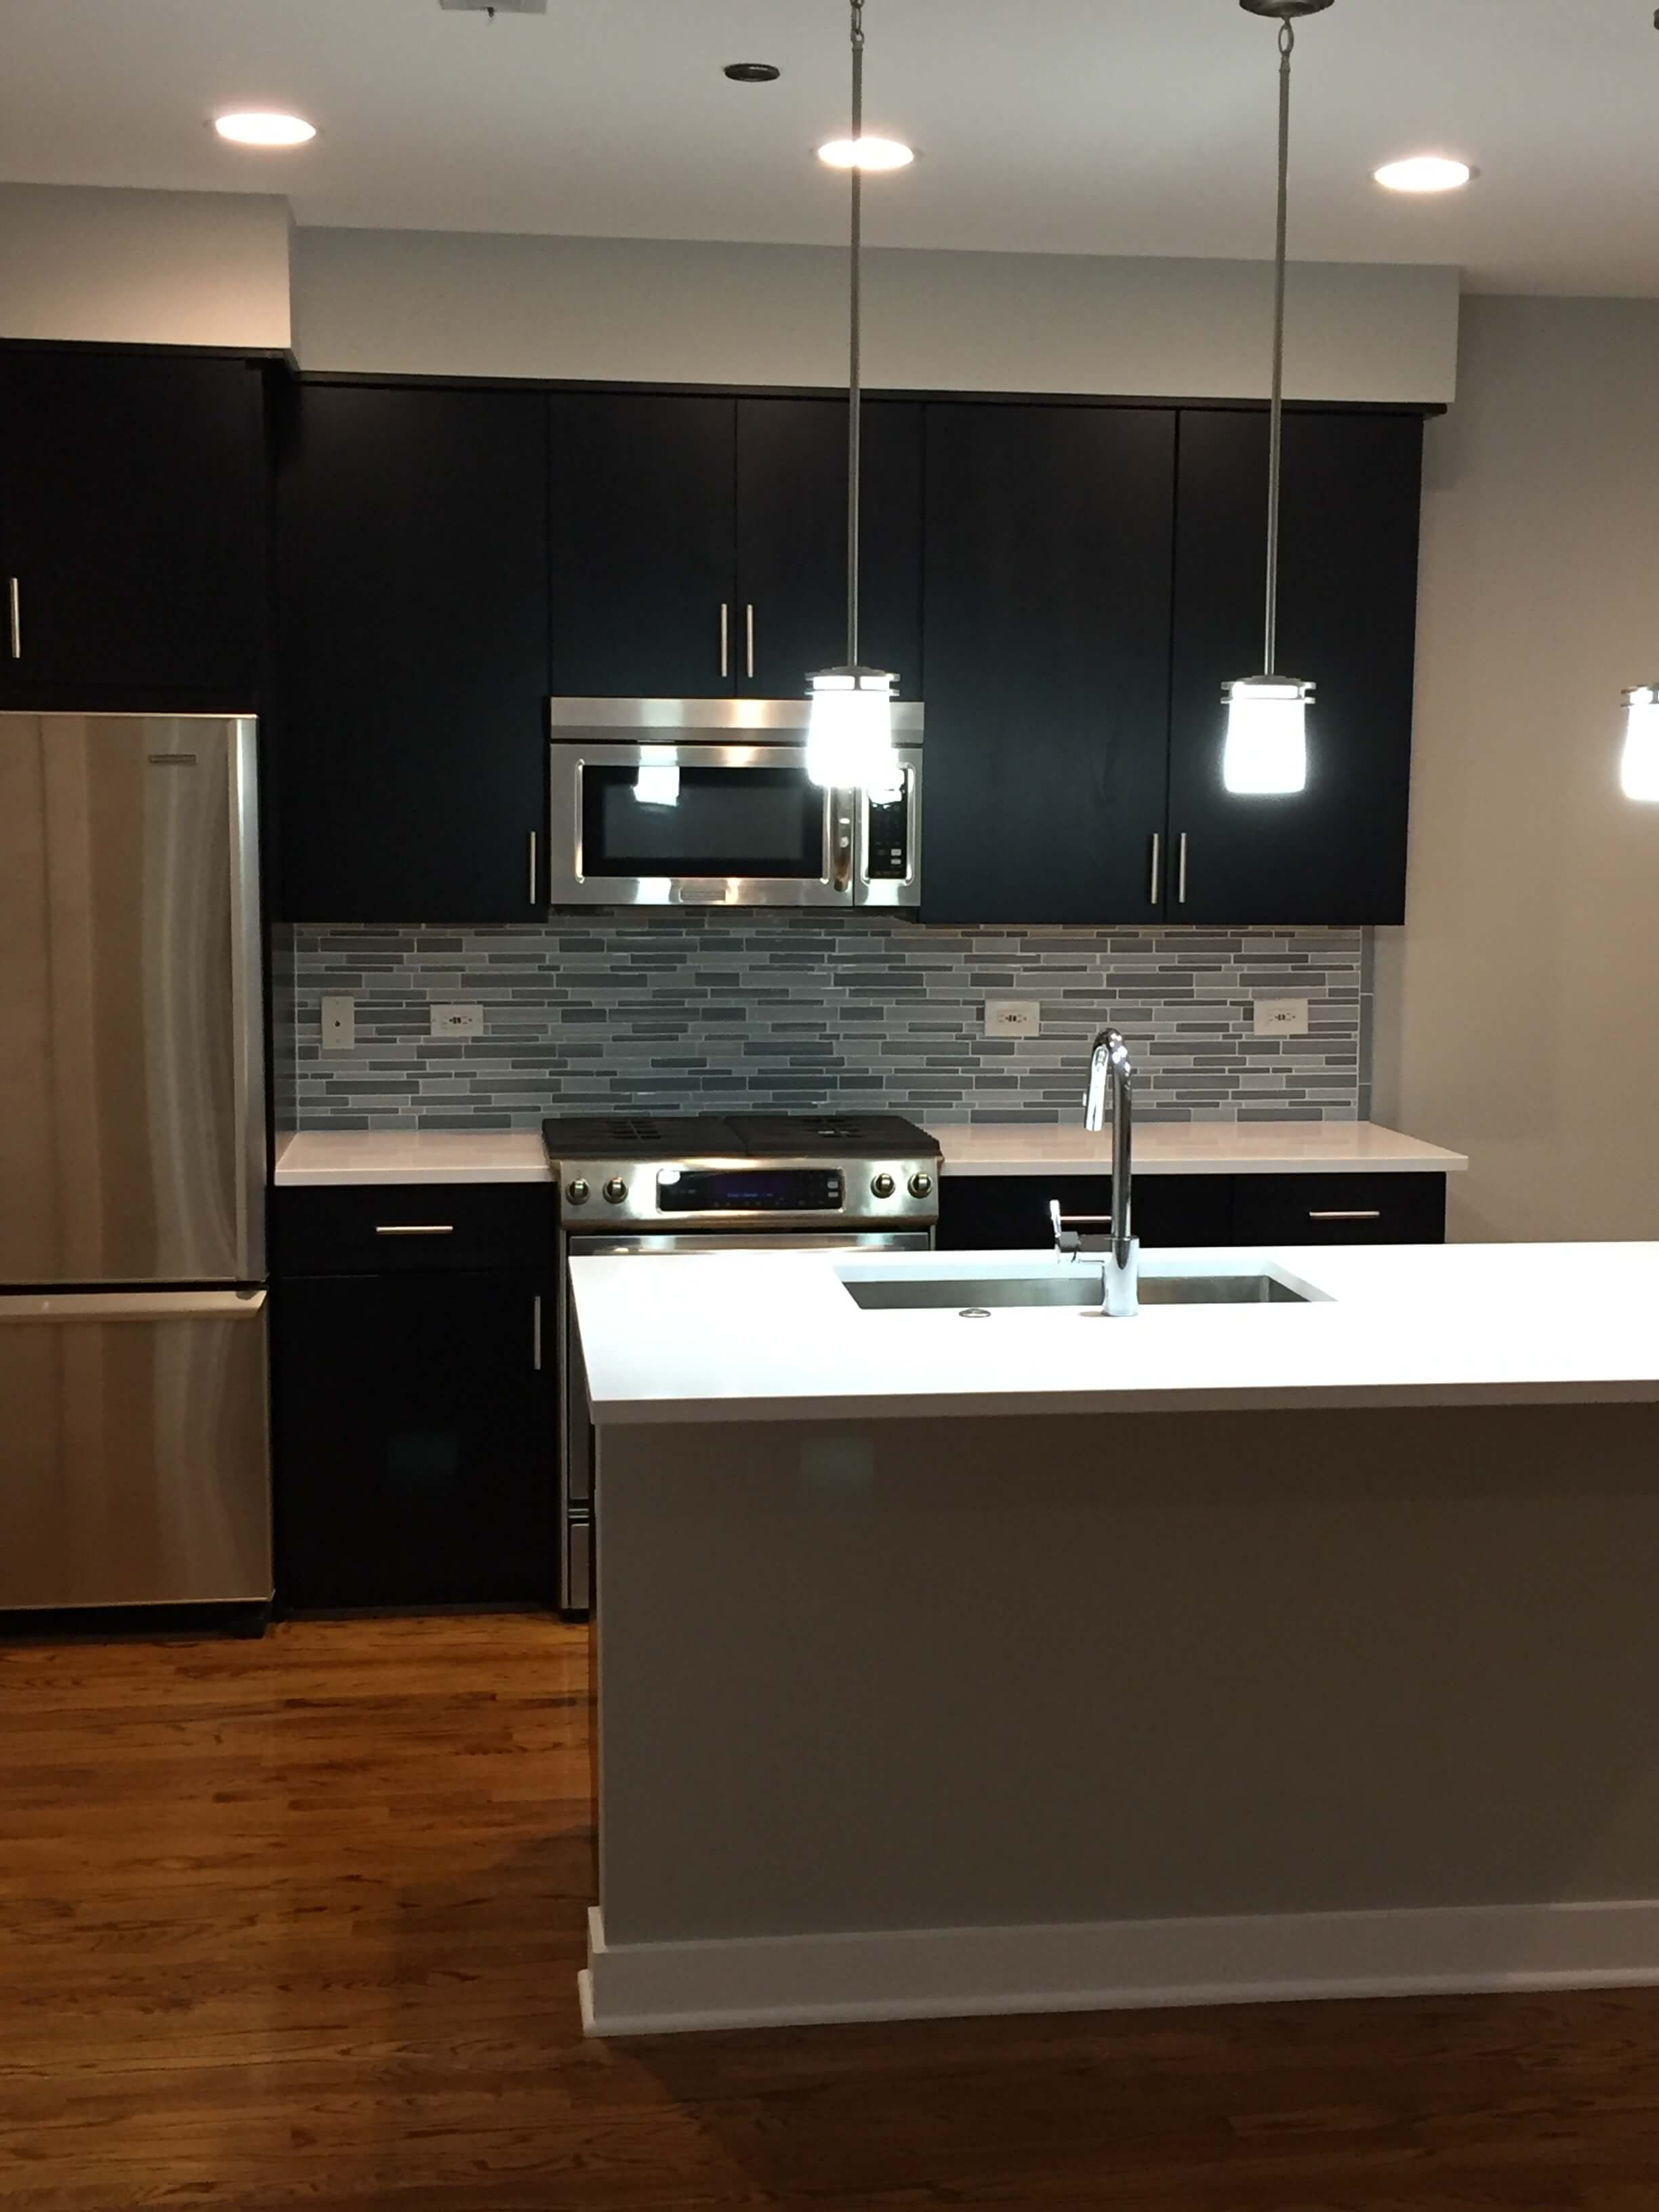 Chicago Kitchen Remodeling Contractor Get Your Dream: Welcome To Remodeling Experts Of Chicago, Kitchens